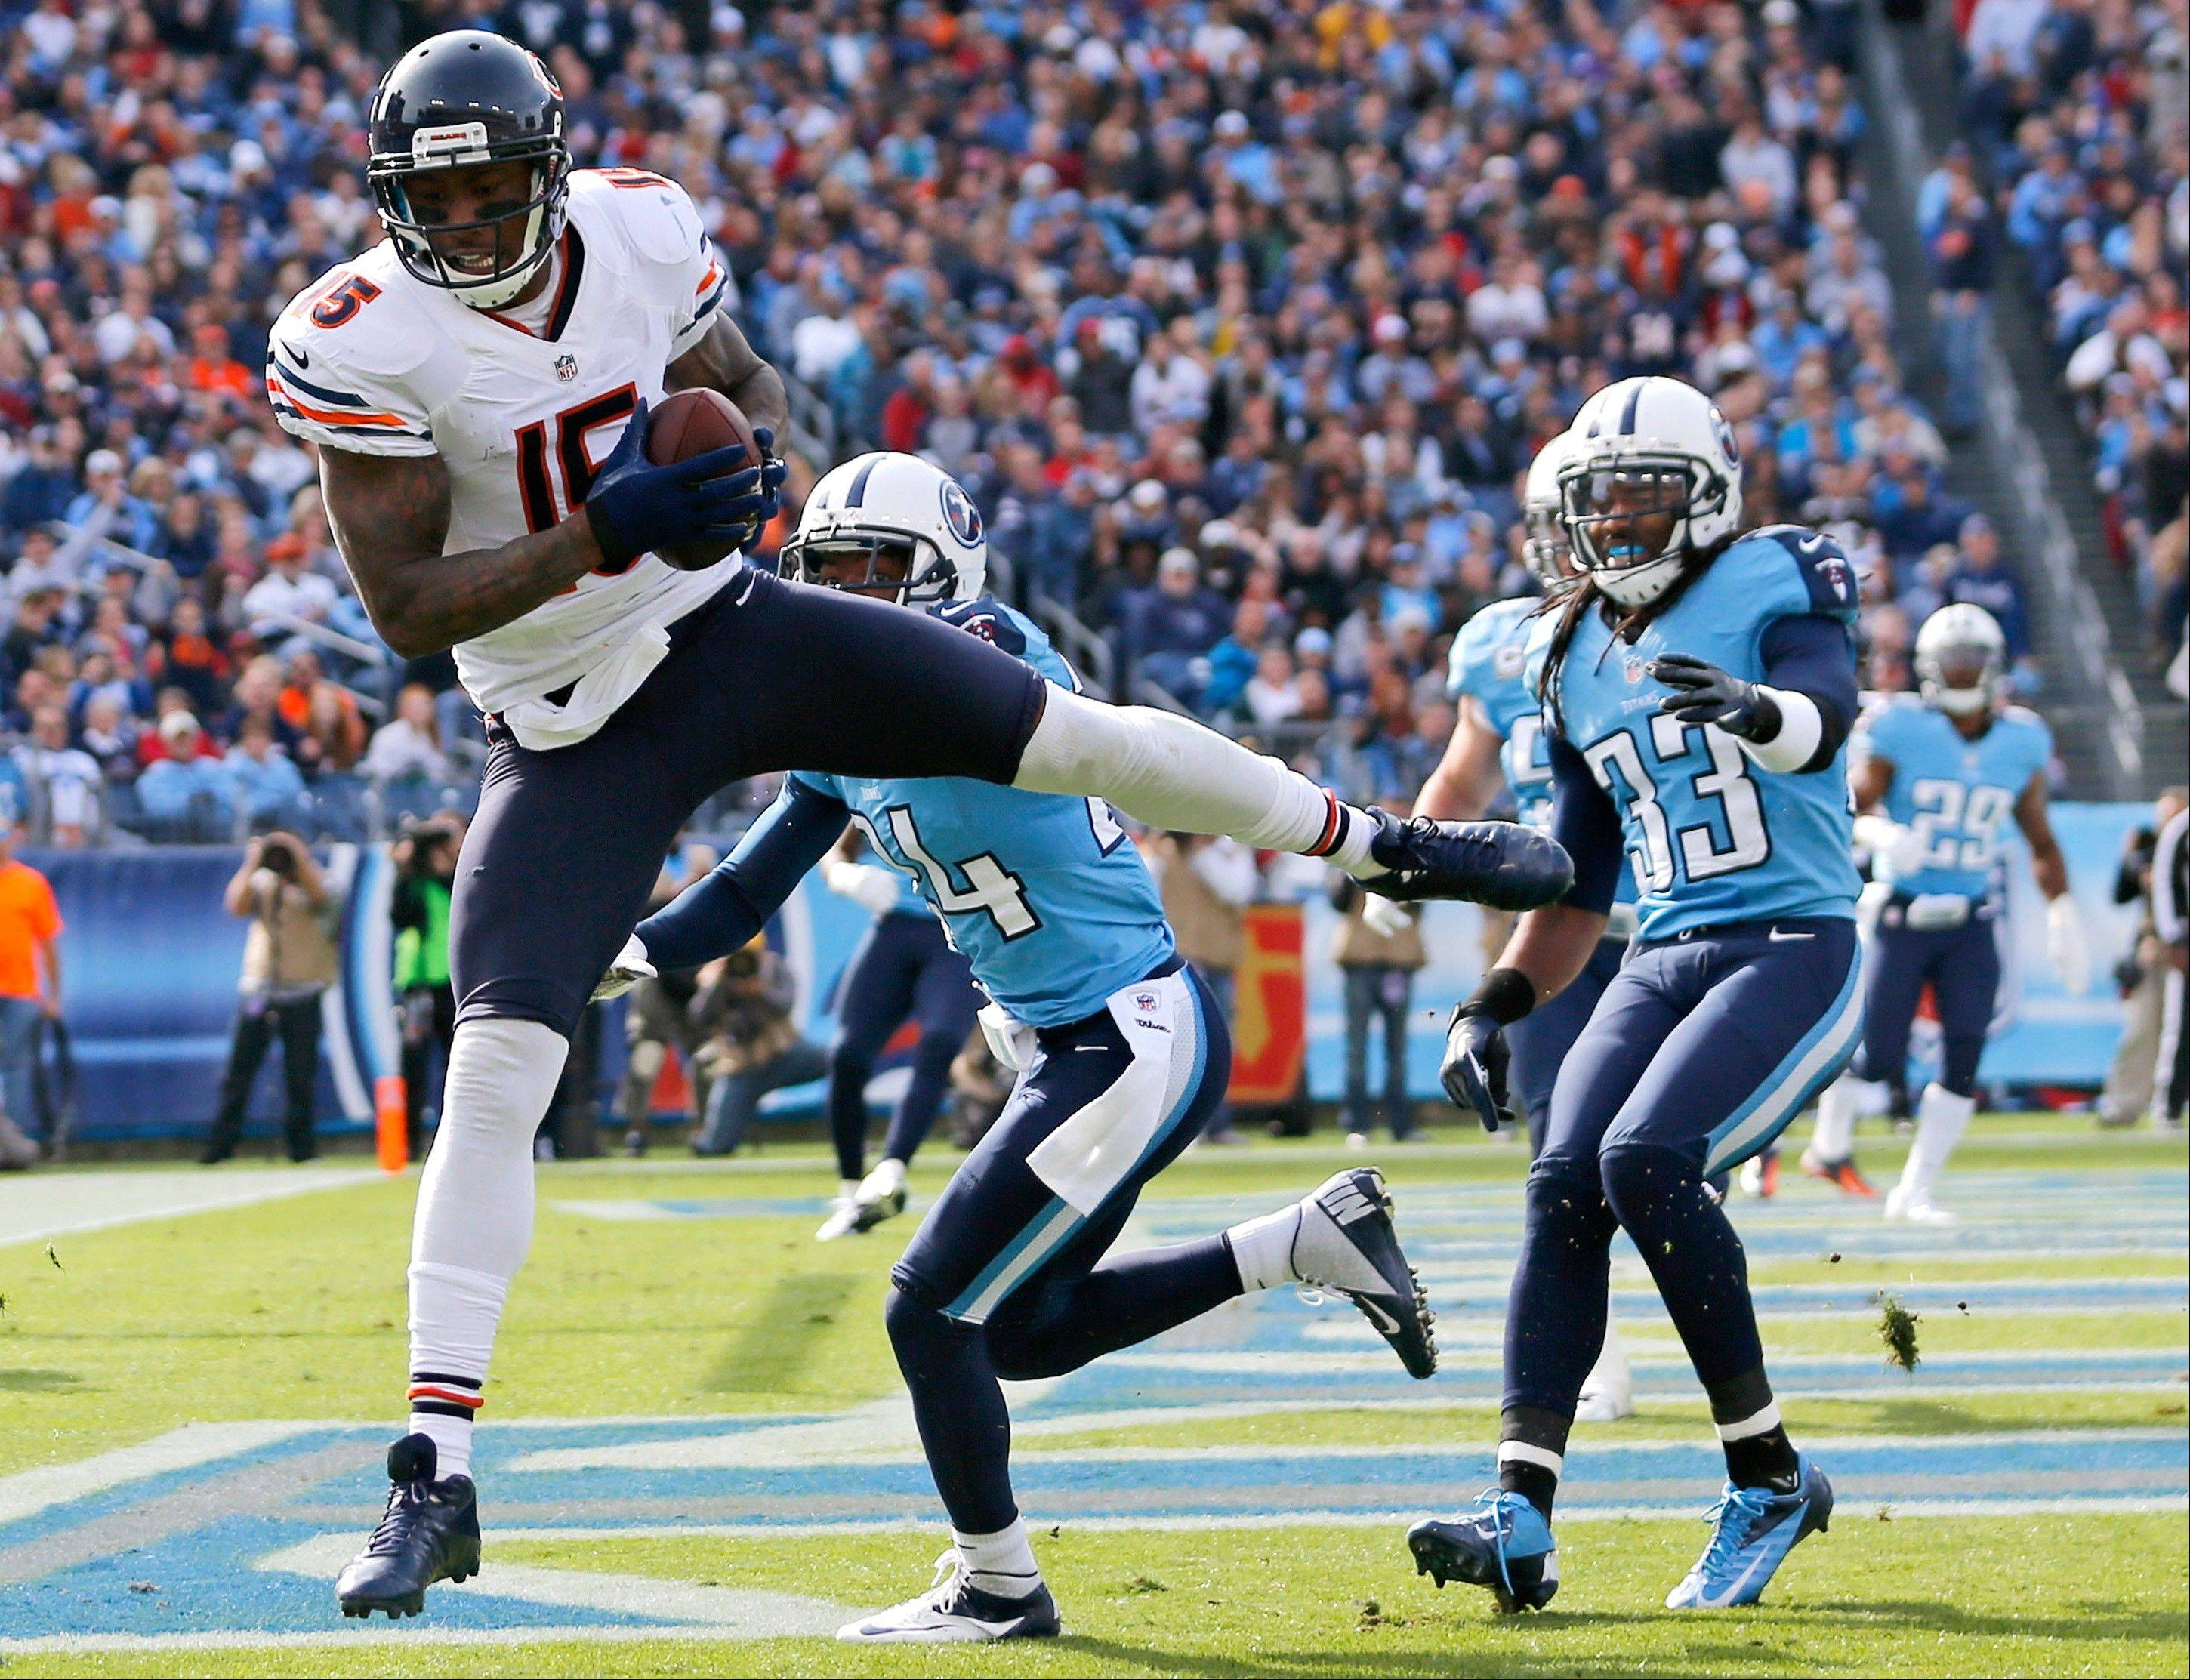 Chicago Bears wide receiver Brandon Marshall catches a 13-yard touchdown pass as he is defended by Tennessee Titans cornerback Coty Sensabaugh and safety Michael Griffin in the first quarter.